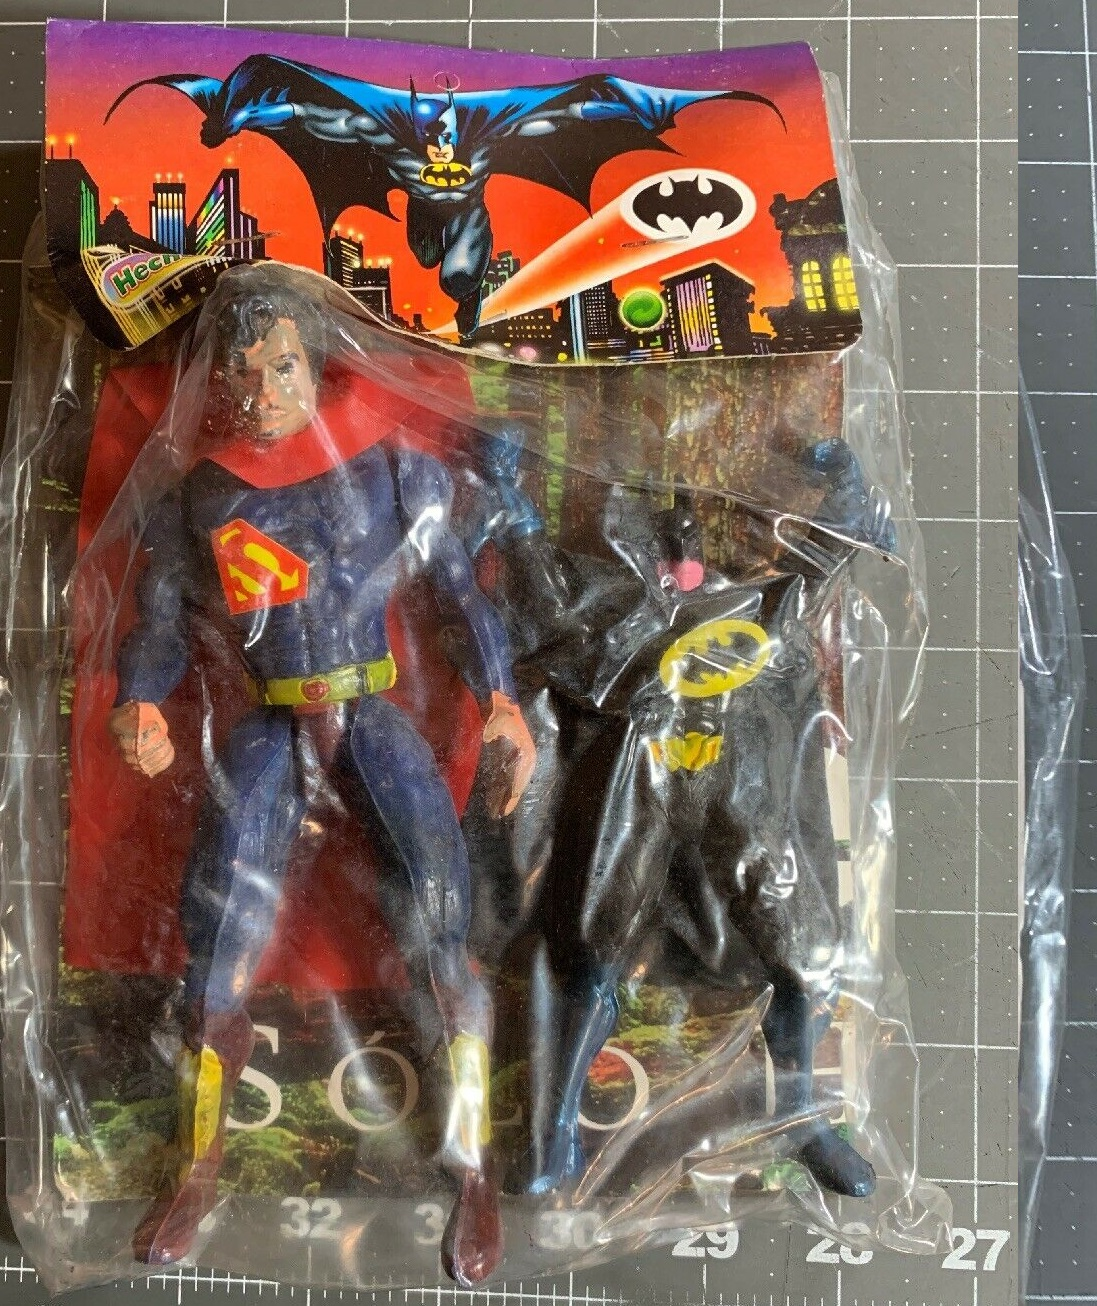 Superman and Batman figures (Made in Mexico)